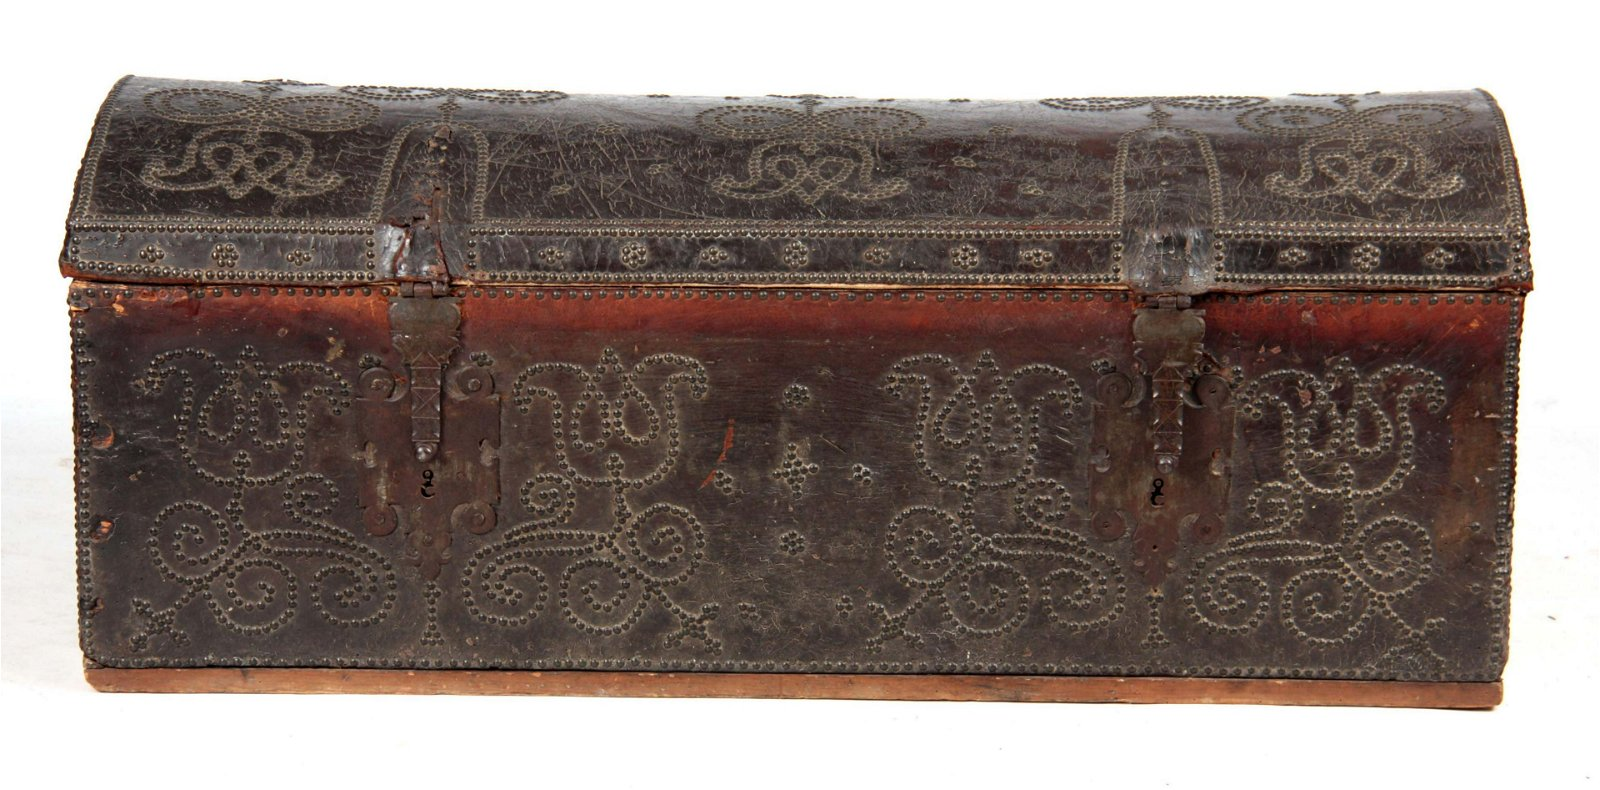 A 17TH CENTURY BRASS STUDDED LEATHER BOUND DOME-TO